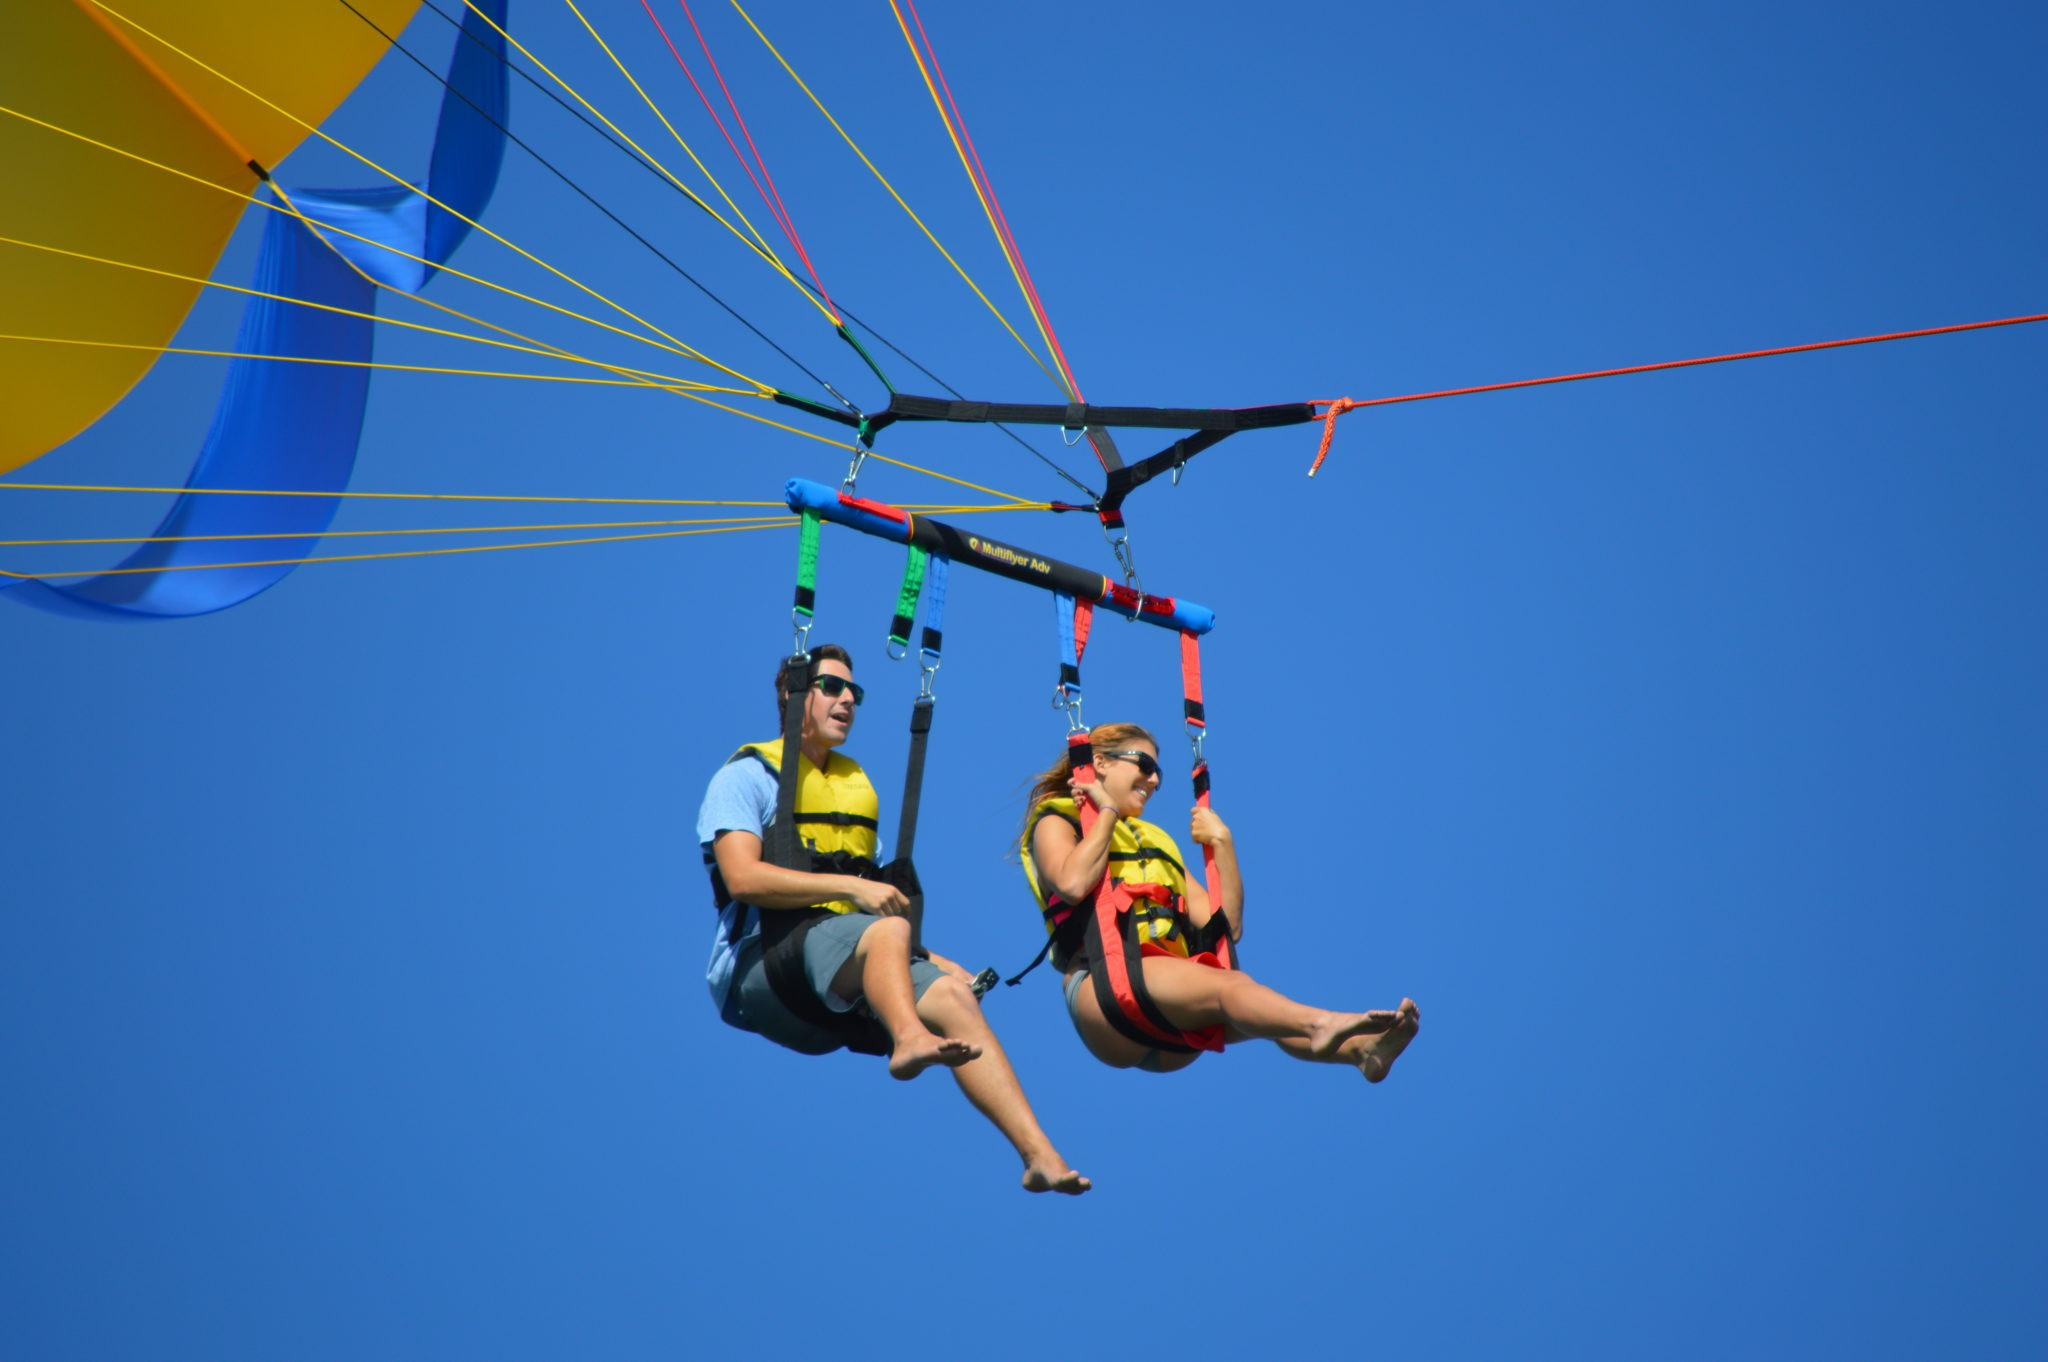 Tourists Parasailing in Miami